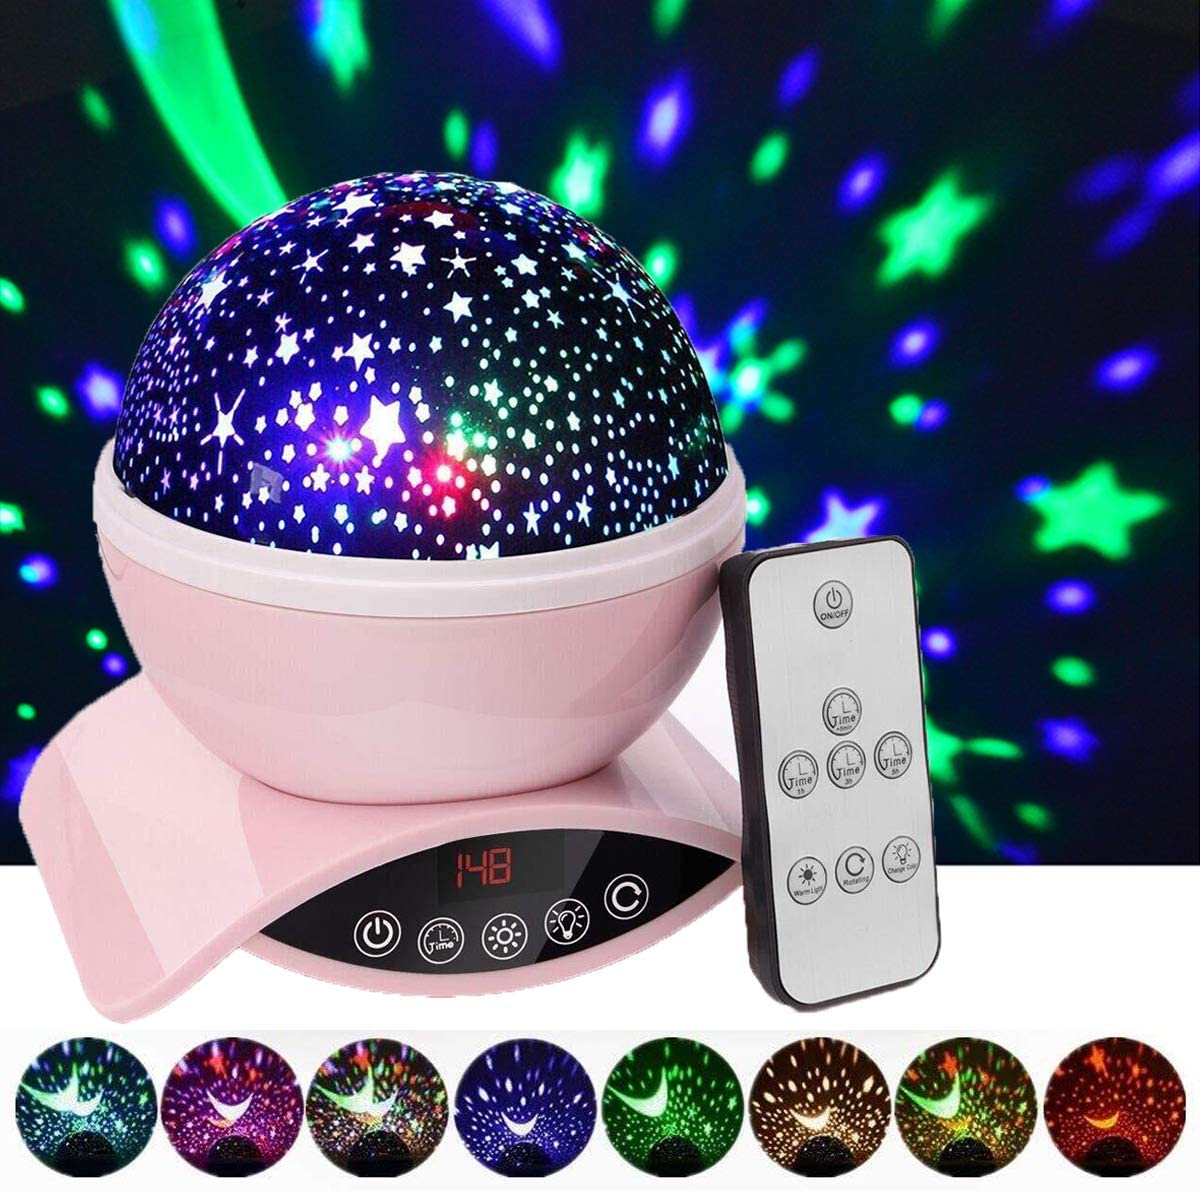 Elecstars Night Lights, Rechargeable Star Projector with Remote Control and Timer Auto Off Design, Rotating Projection Lighting Lamp, Room Decor. (Pink)